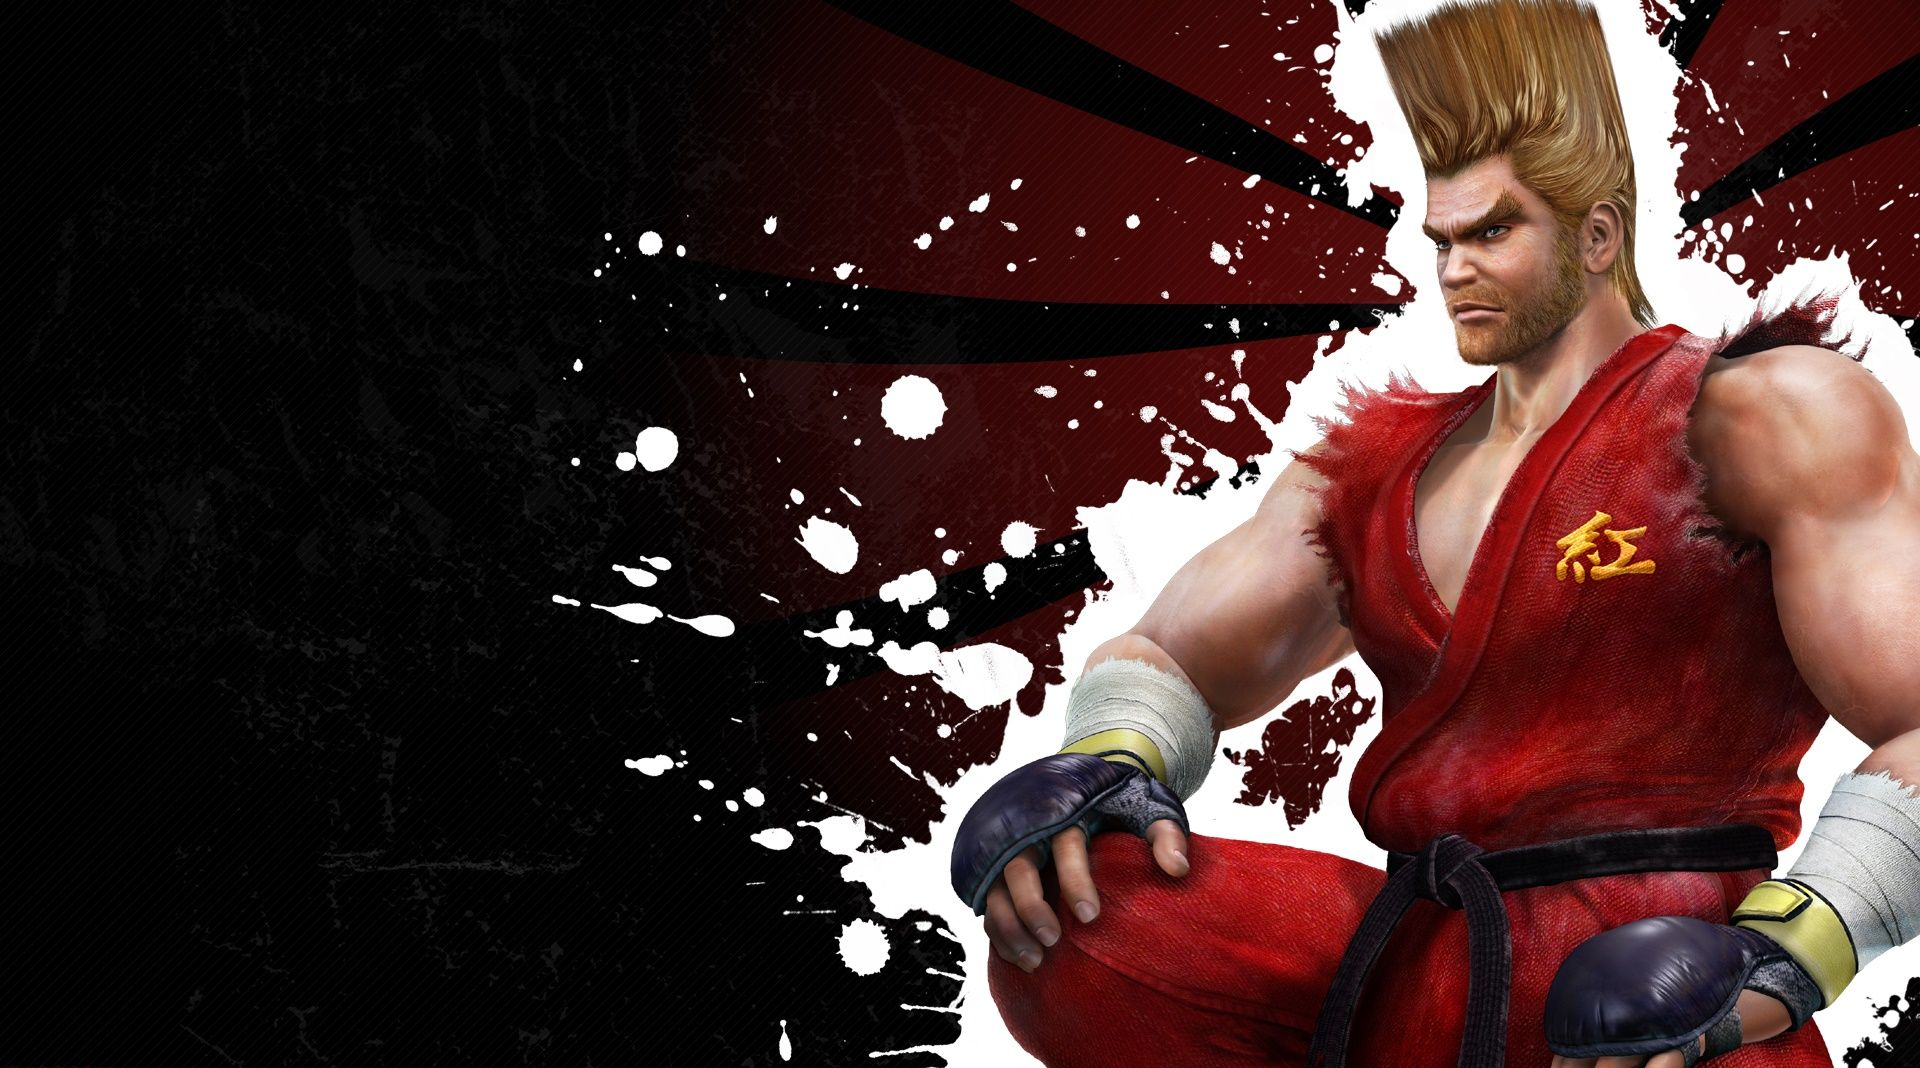 Tekken Hd Wallpapers Comic Book Wallpaper Hd Wallpaper Wallpaper